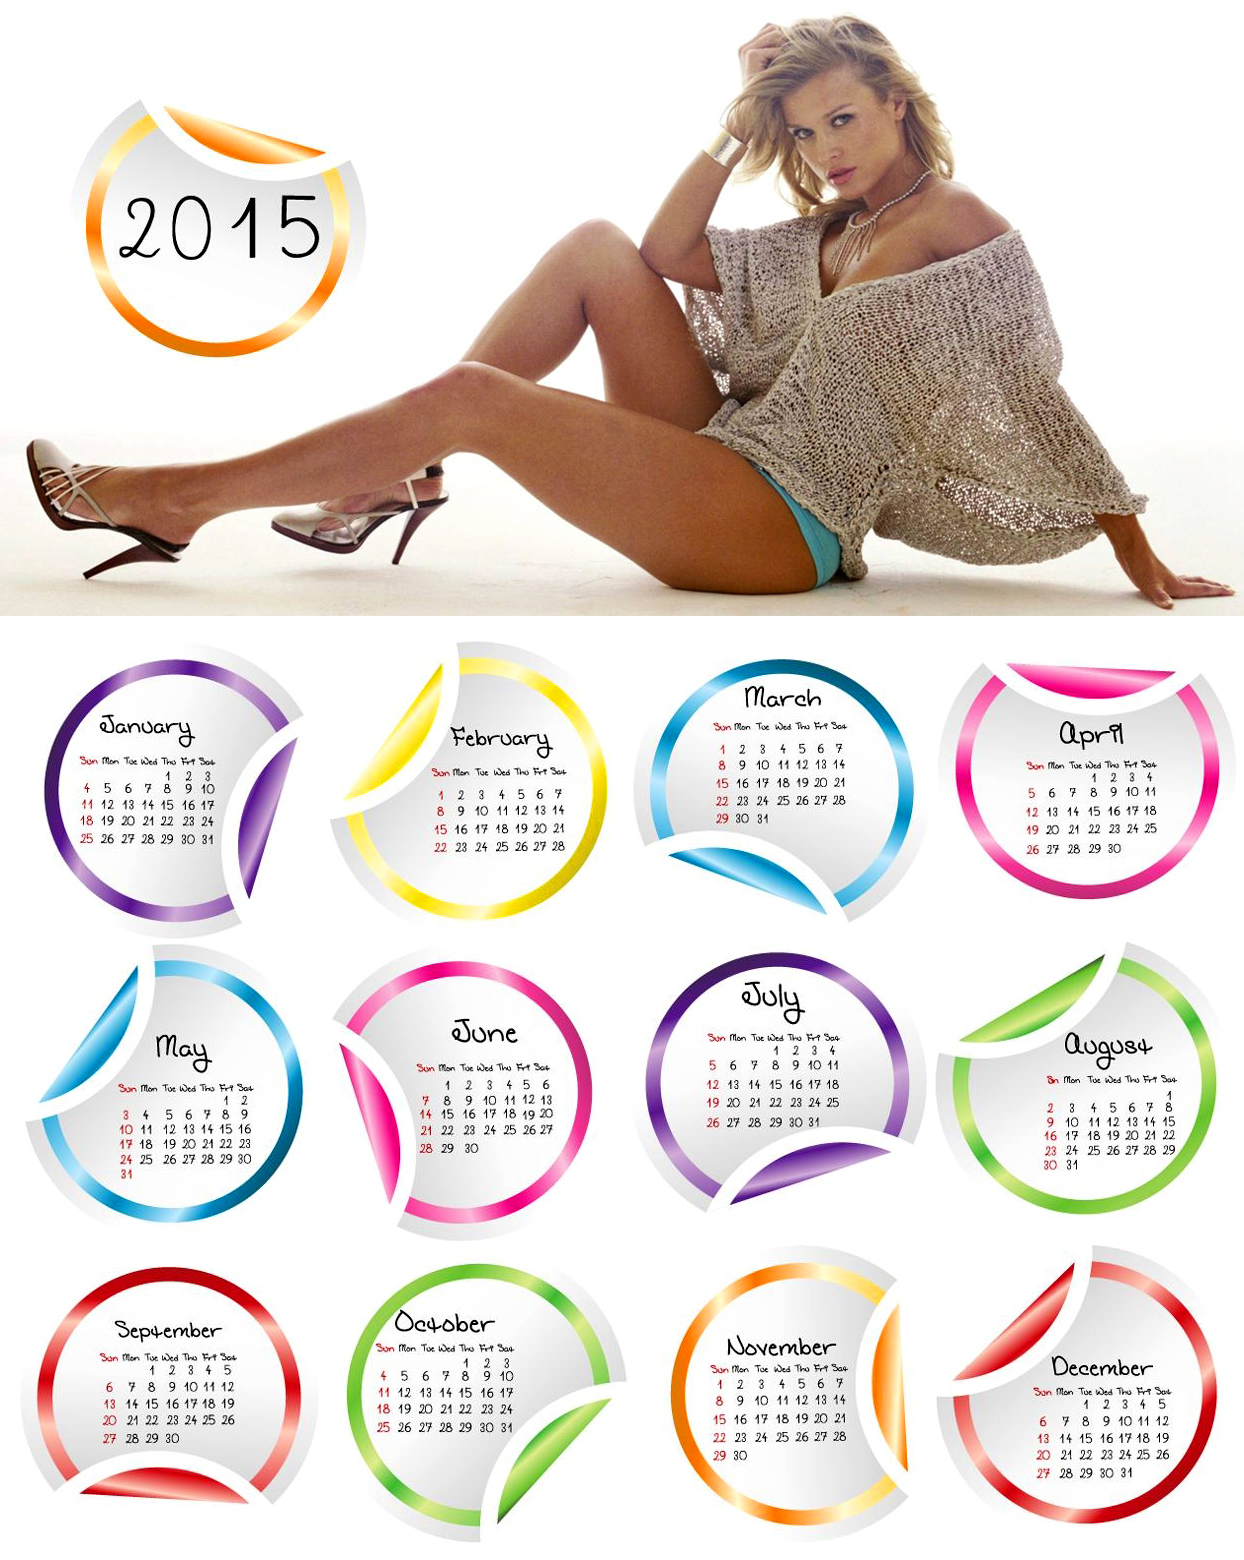 joanna krupa celebrity wallpaper 2015 calendar